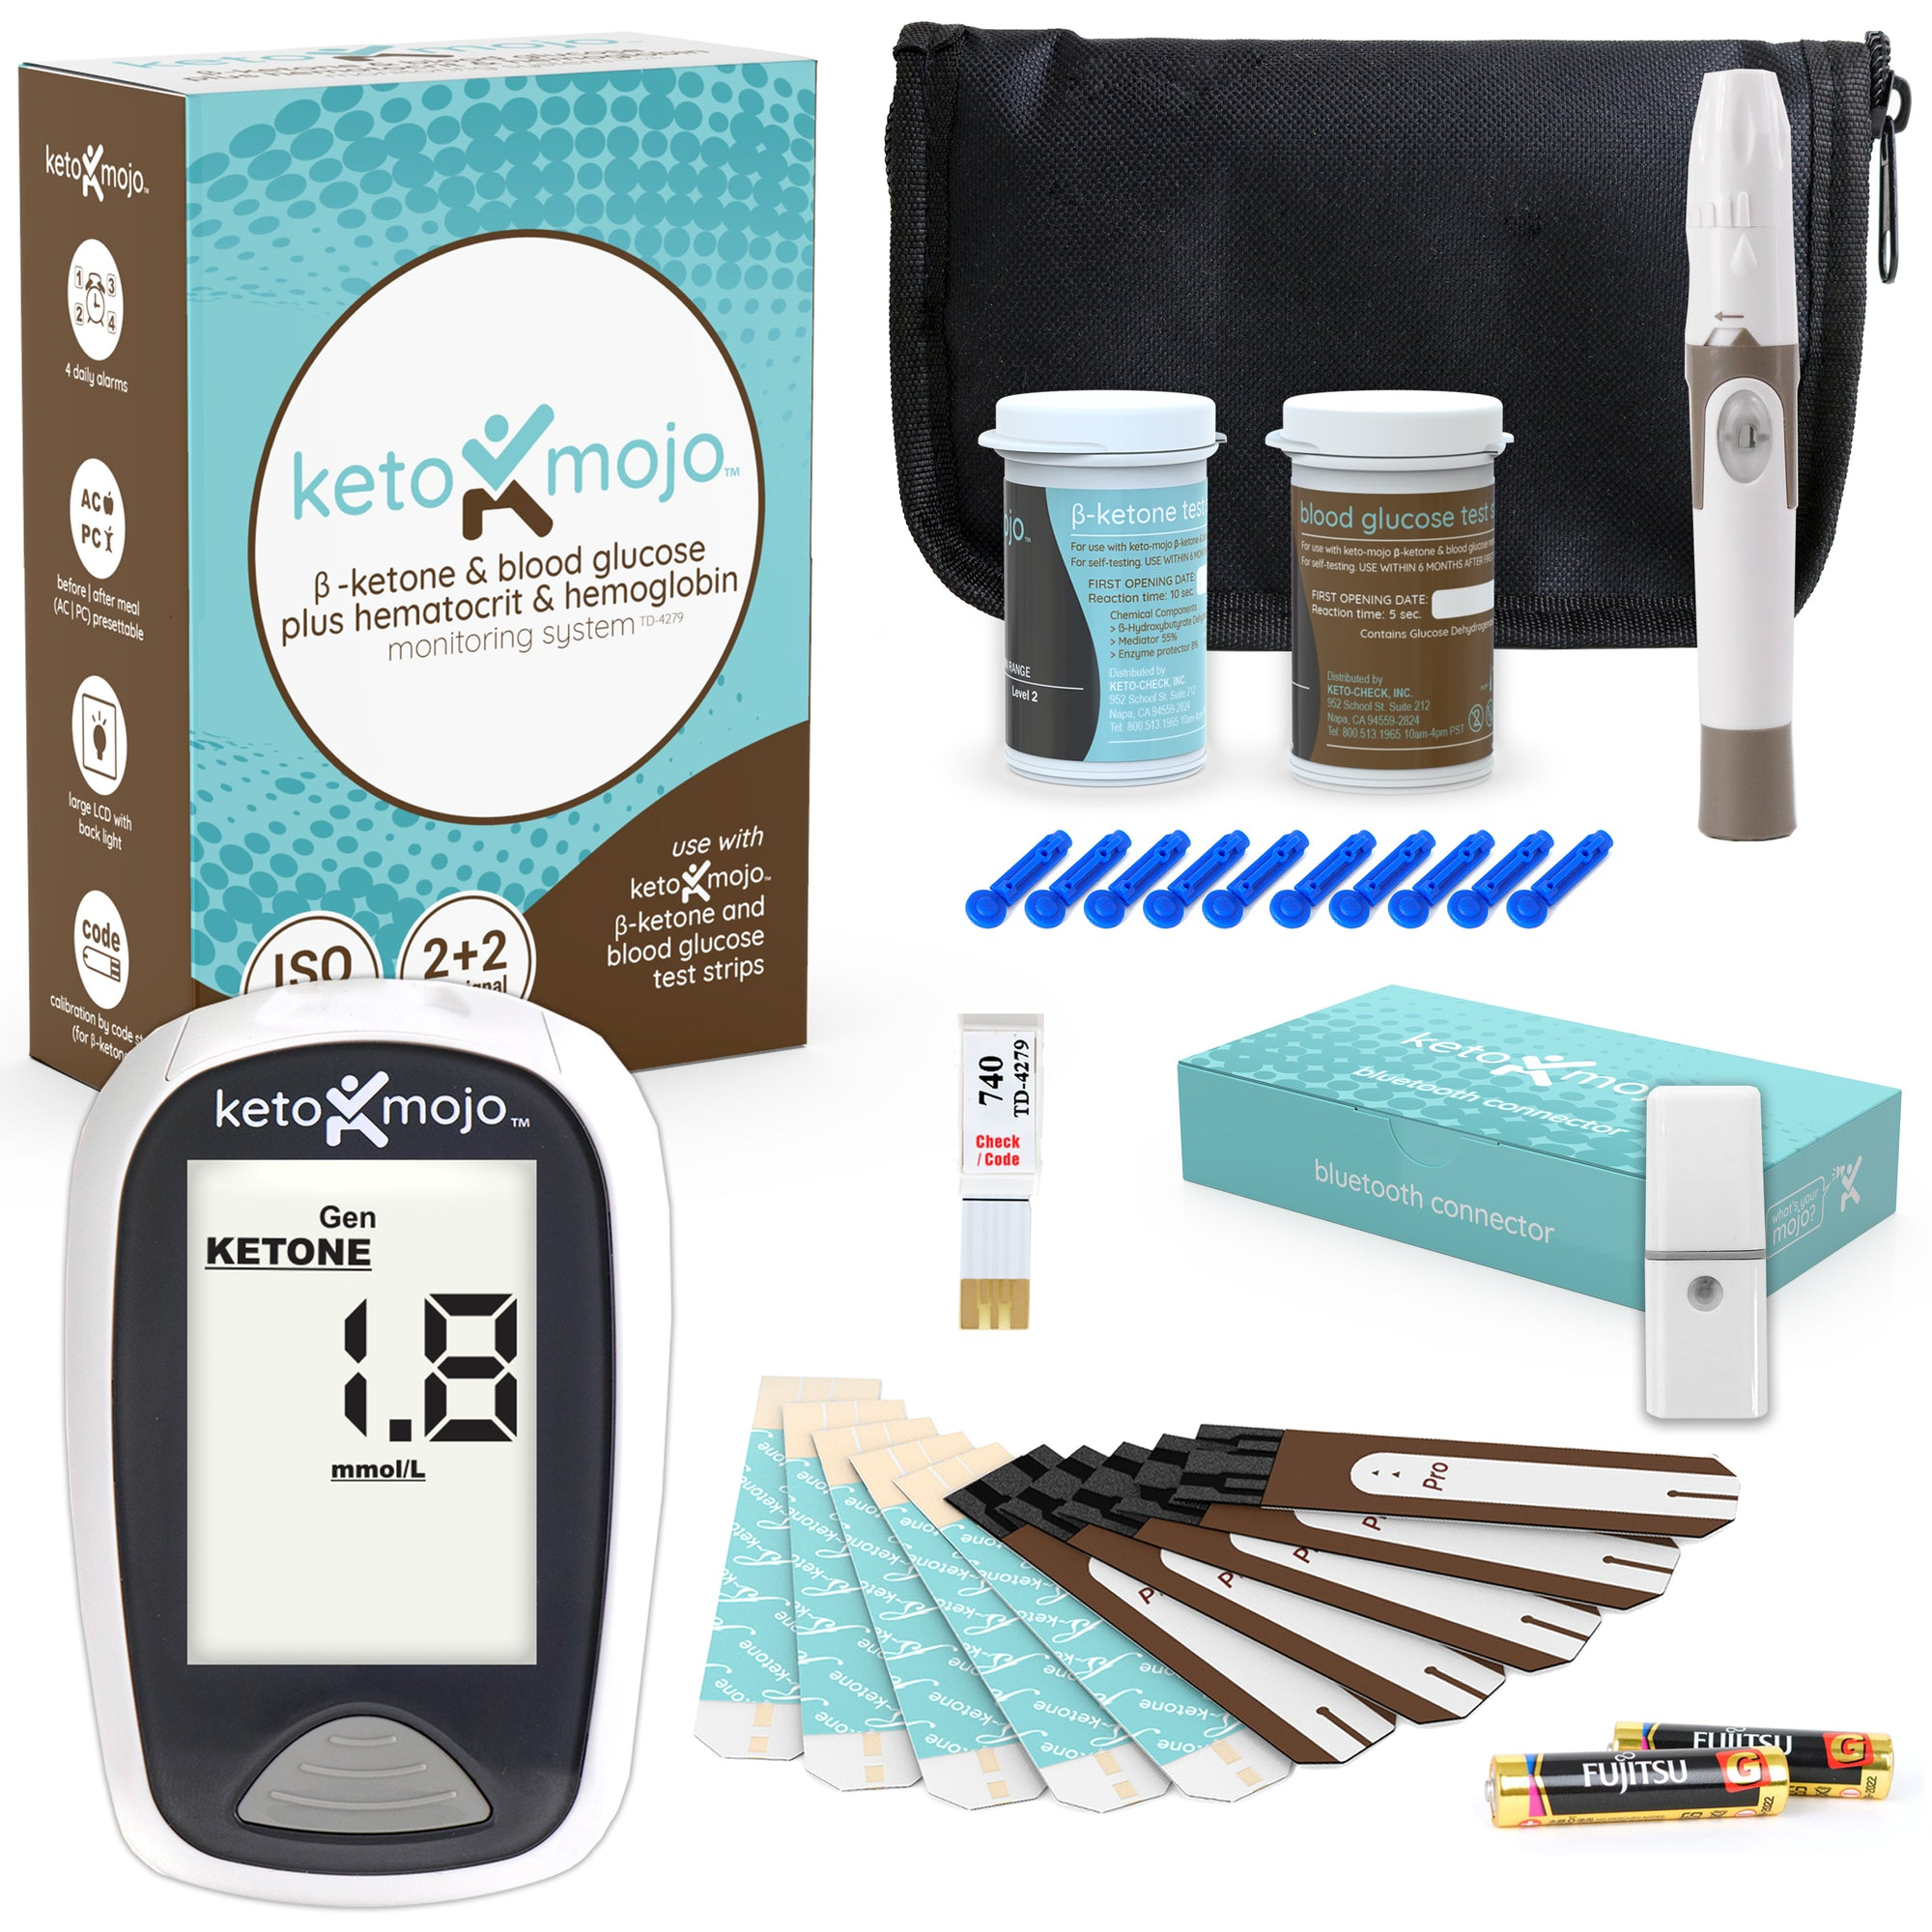 Keto-Mojo Ketone & Glucose Basic Kit + Free Bluetooth Connector